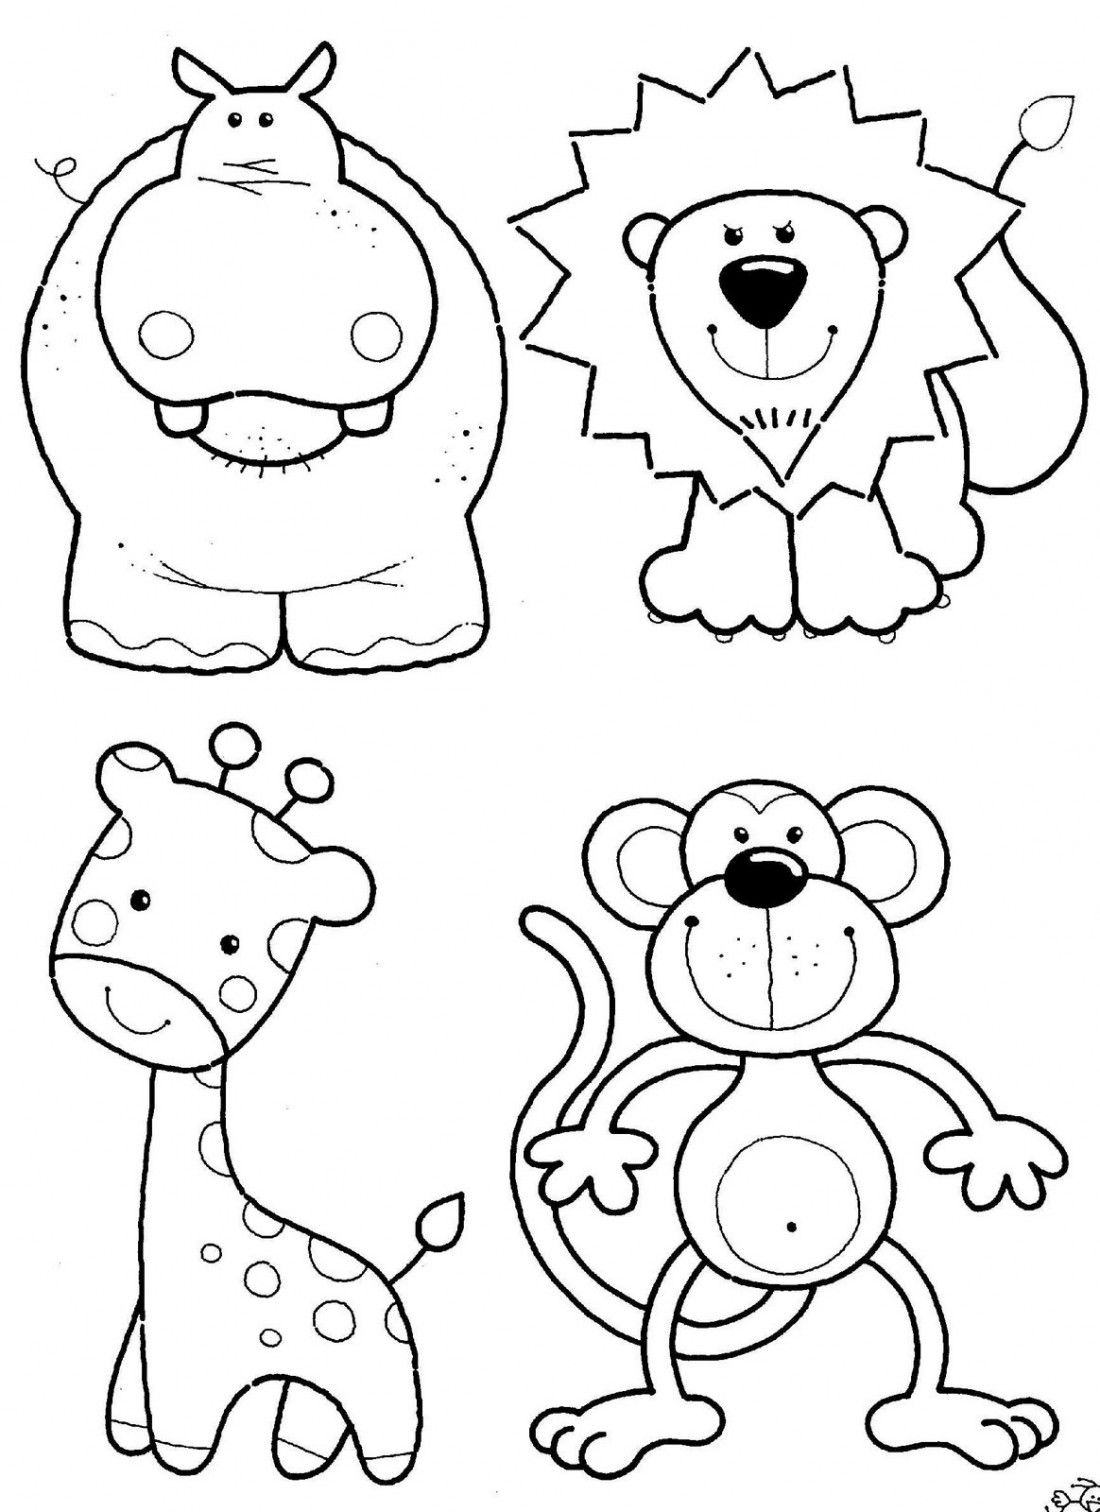 Animals coloring pages for kids printable - Free Animal Coloring Pages Kids I D Color Or Paint These And Use Them